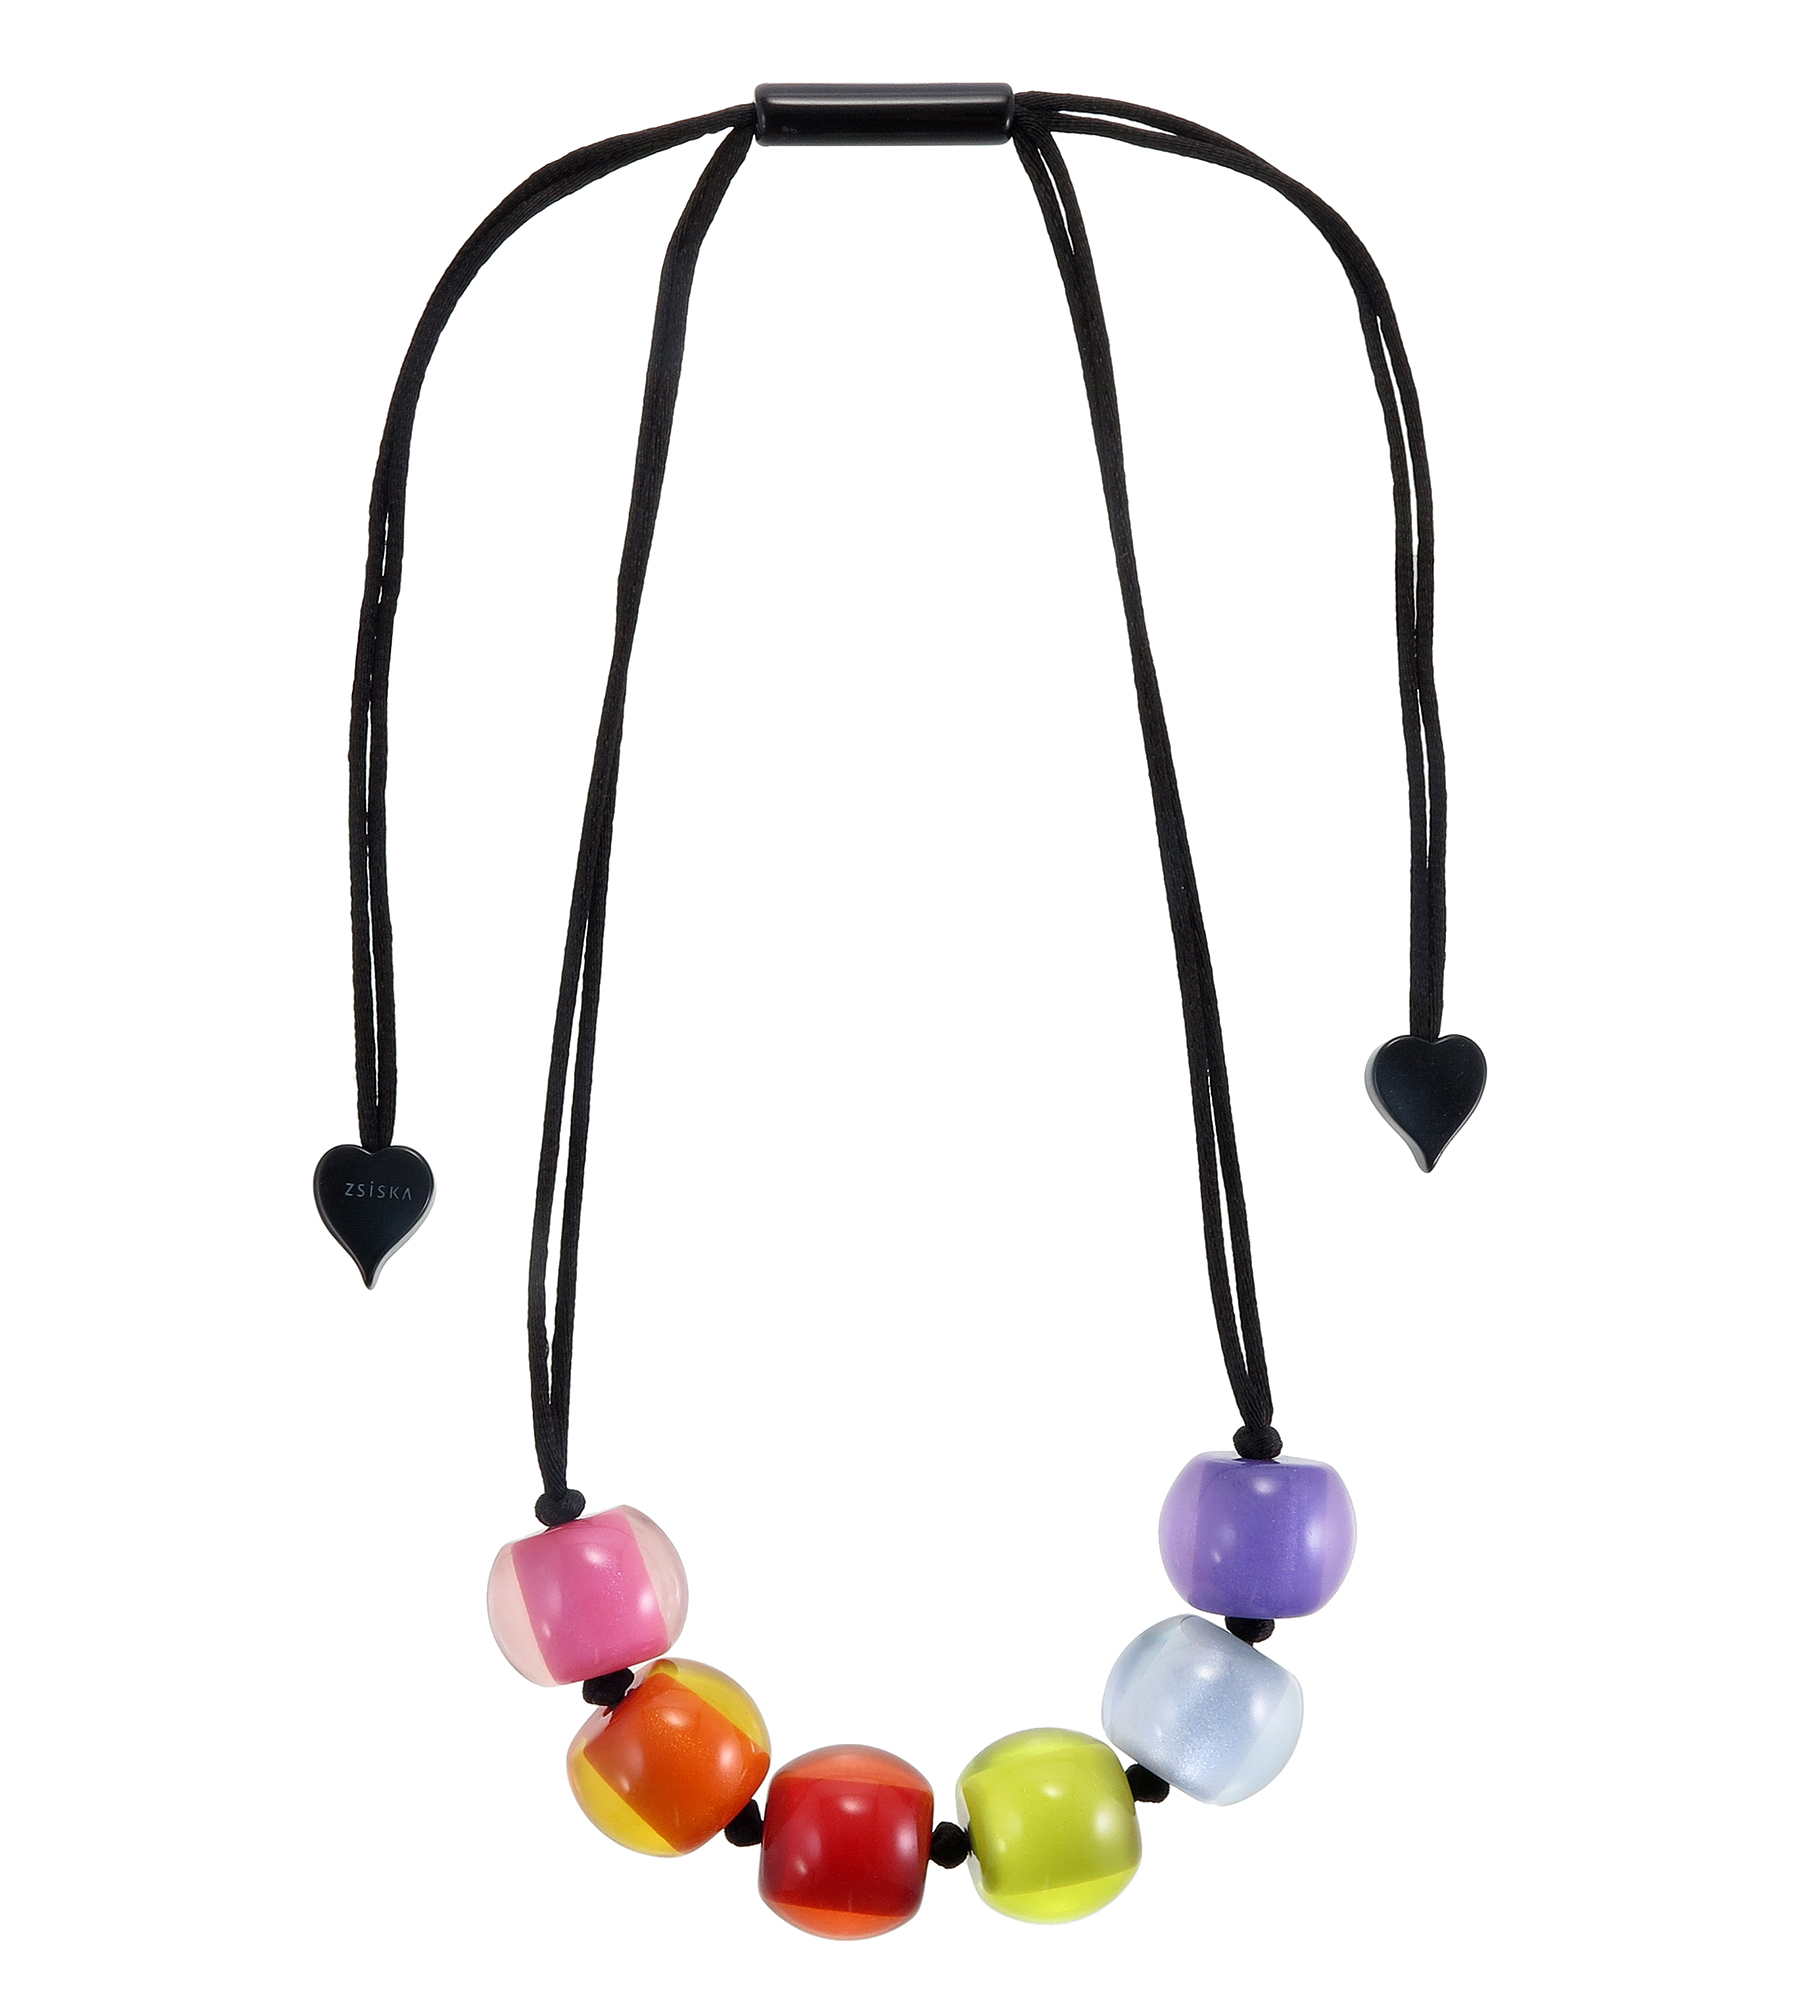 Zsiska Colorful Beads Necklace vijf kralen